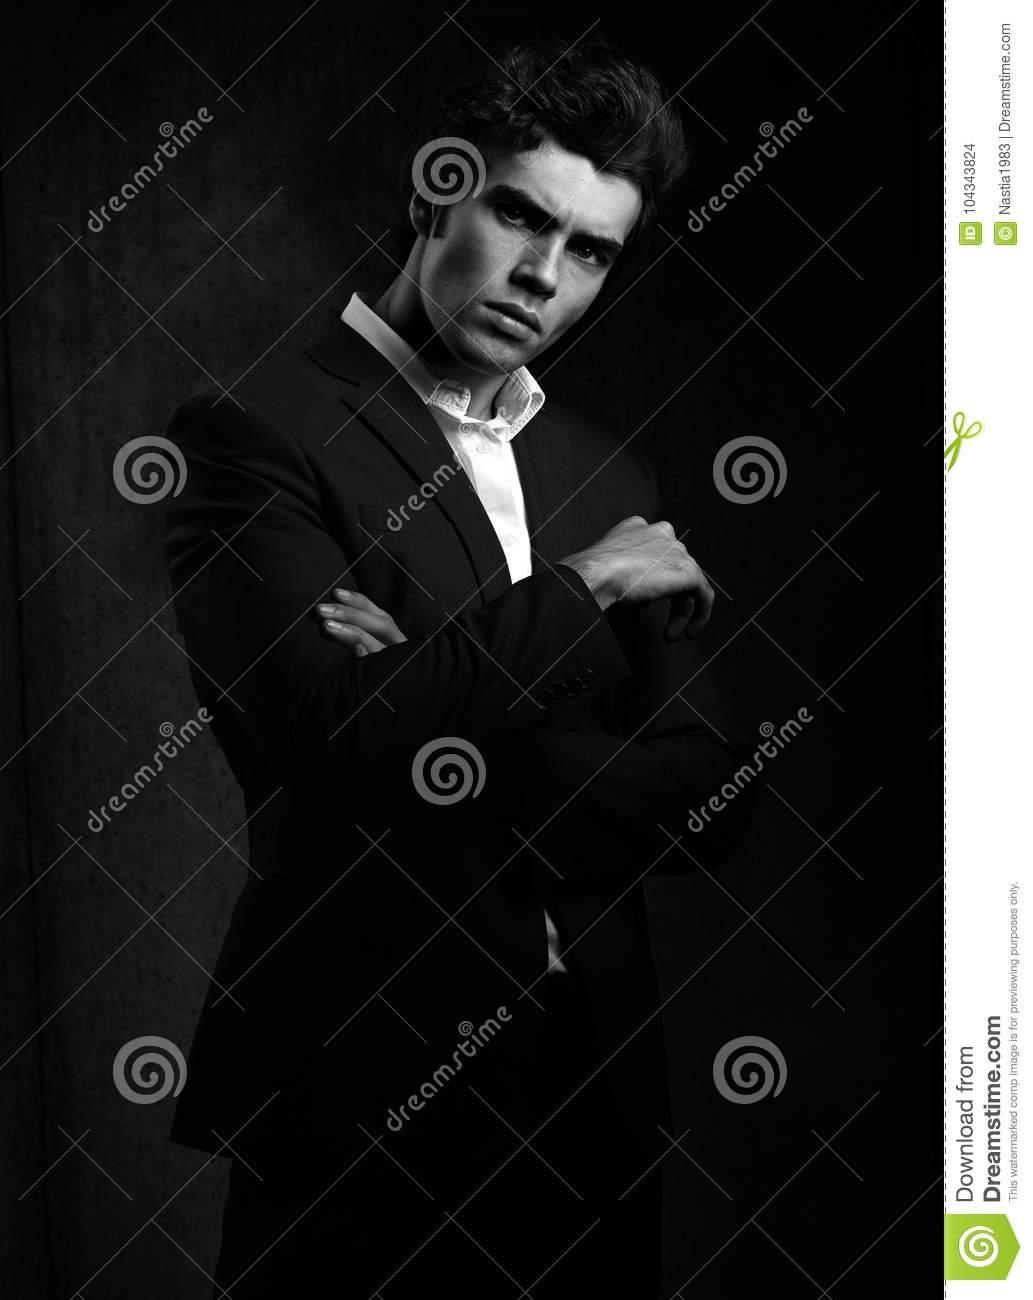 1f312a92 Handsome male model posing in fashion suit and white style shirt looking on dark  shadow background. Black and white portrait